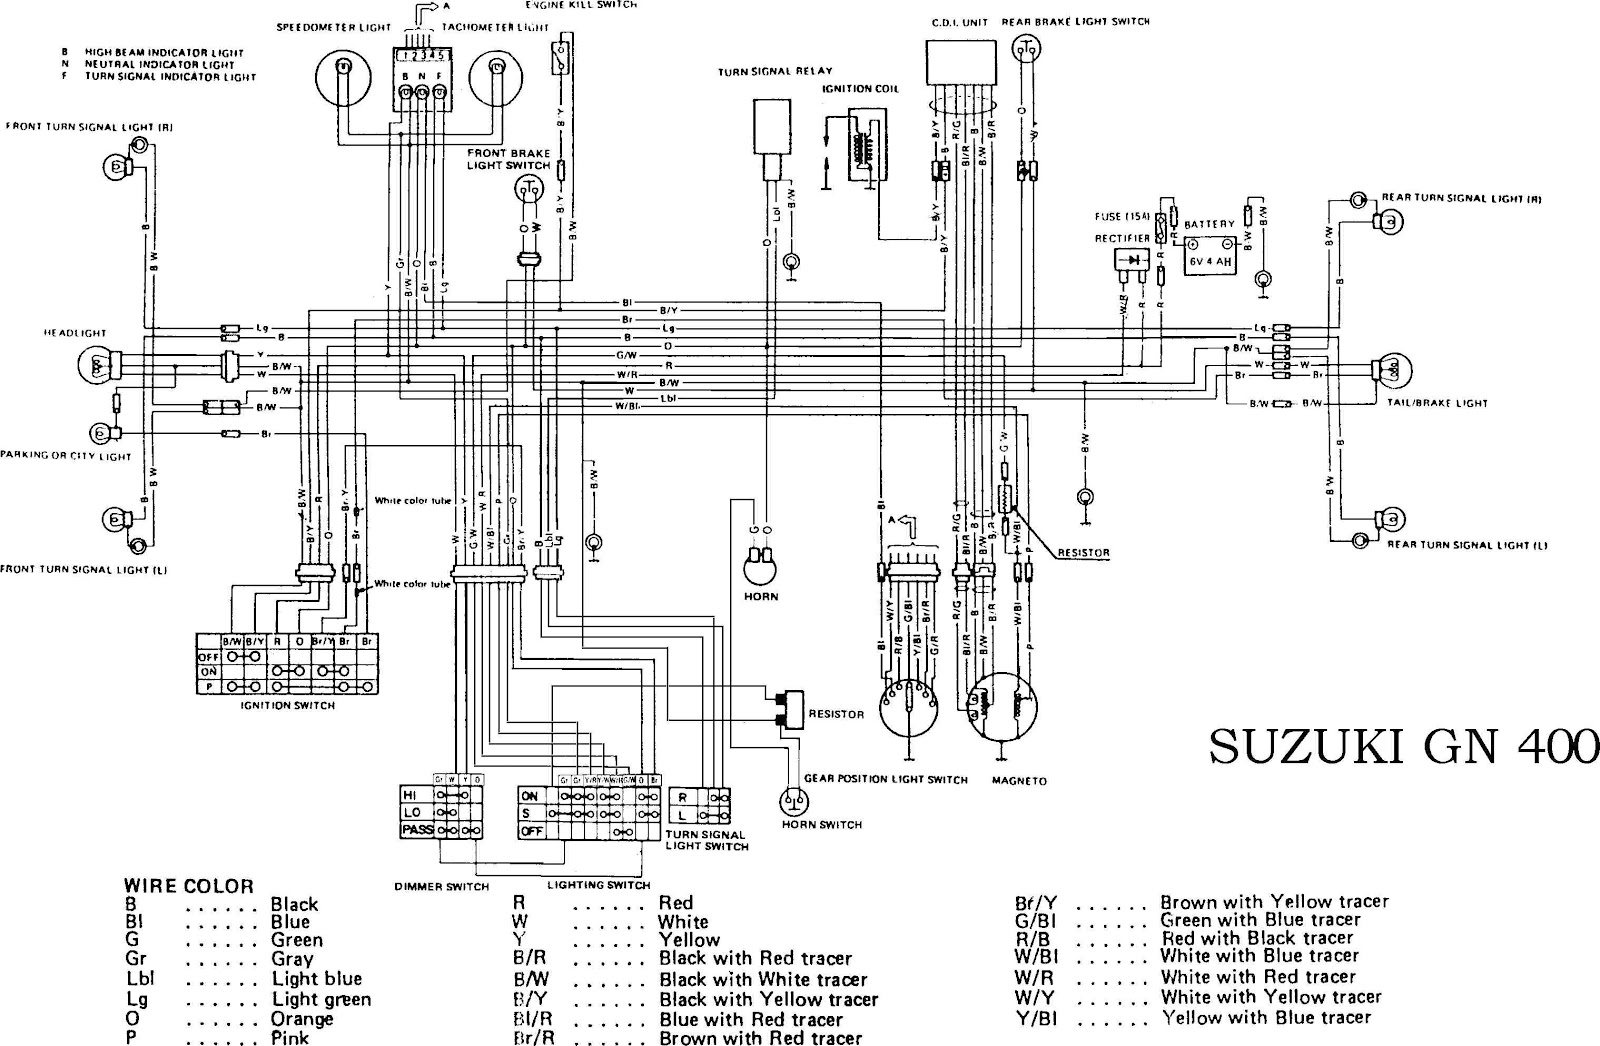 Suzuki+GN400+motorcycle+Complete+Electrical+Wiring+Diagram suzuki gn400 wiring diagram suzuki wiring diagrams instruction 1998 suzuki intruder 1500 wiring diagram at panicattacktreatment.co